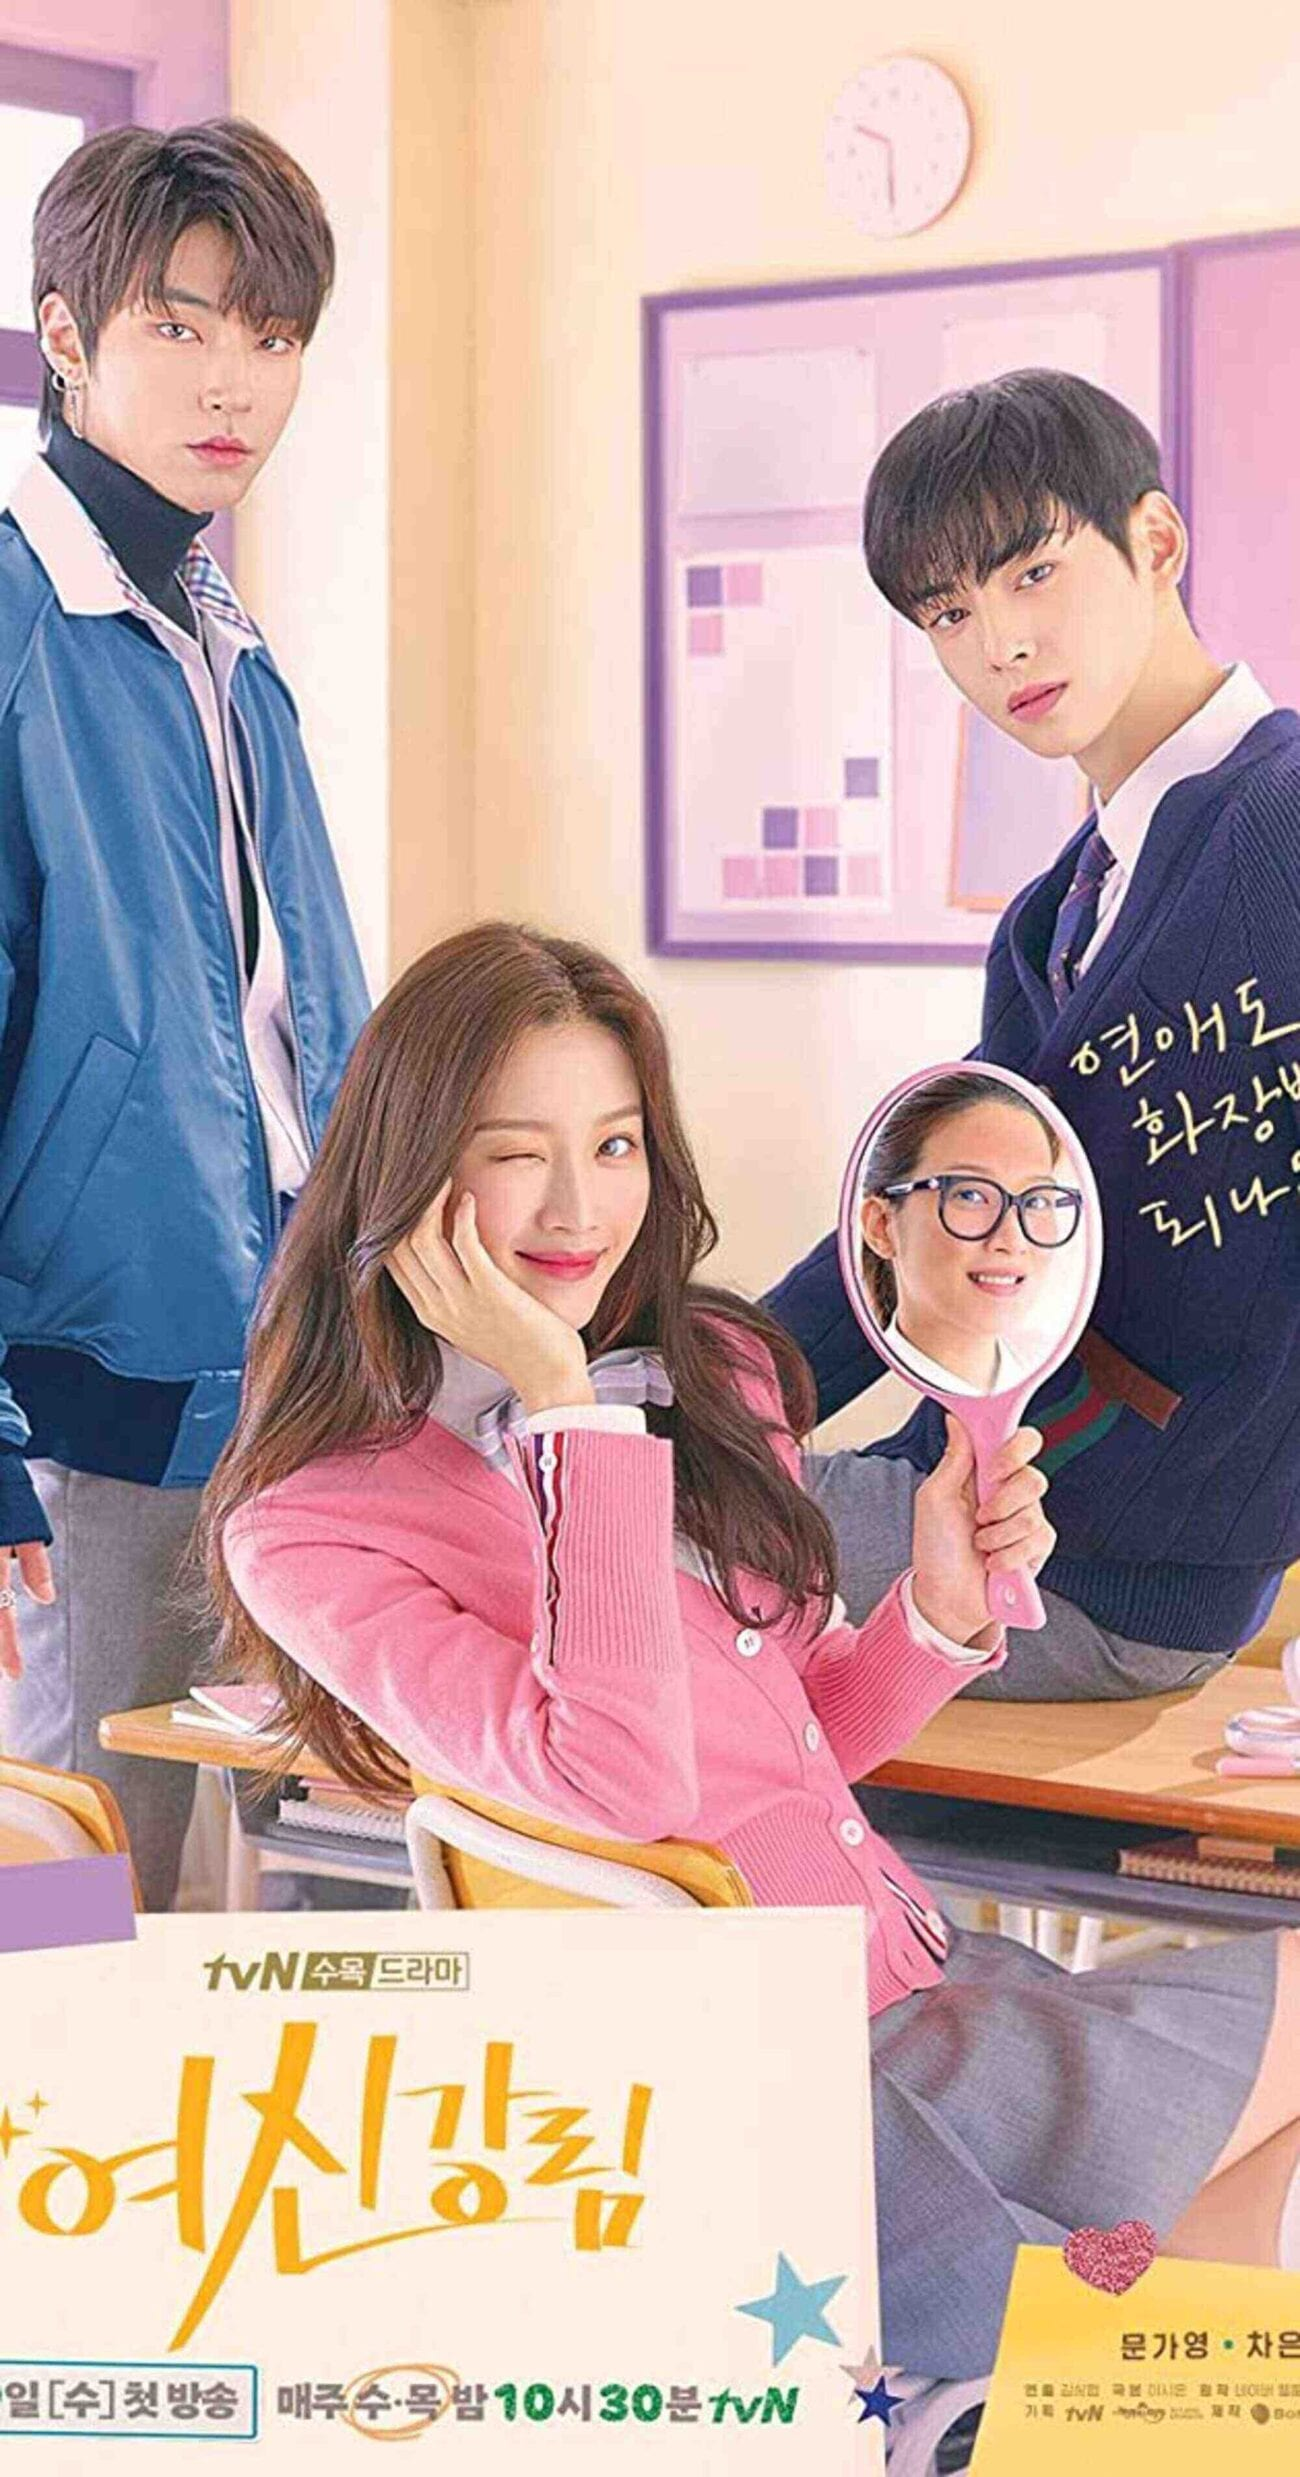 Everyone is raving over this new Korean drama, and we guarantee you'll be just as obsessed. Find out why 'True Beauty' should be your next bingewatch here.